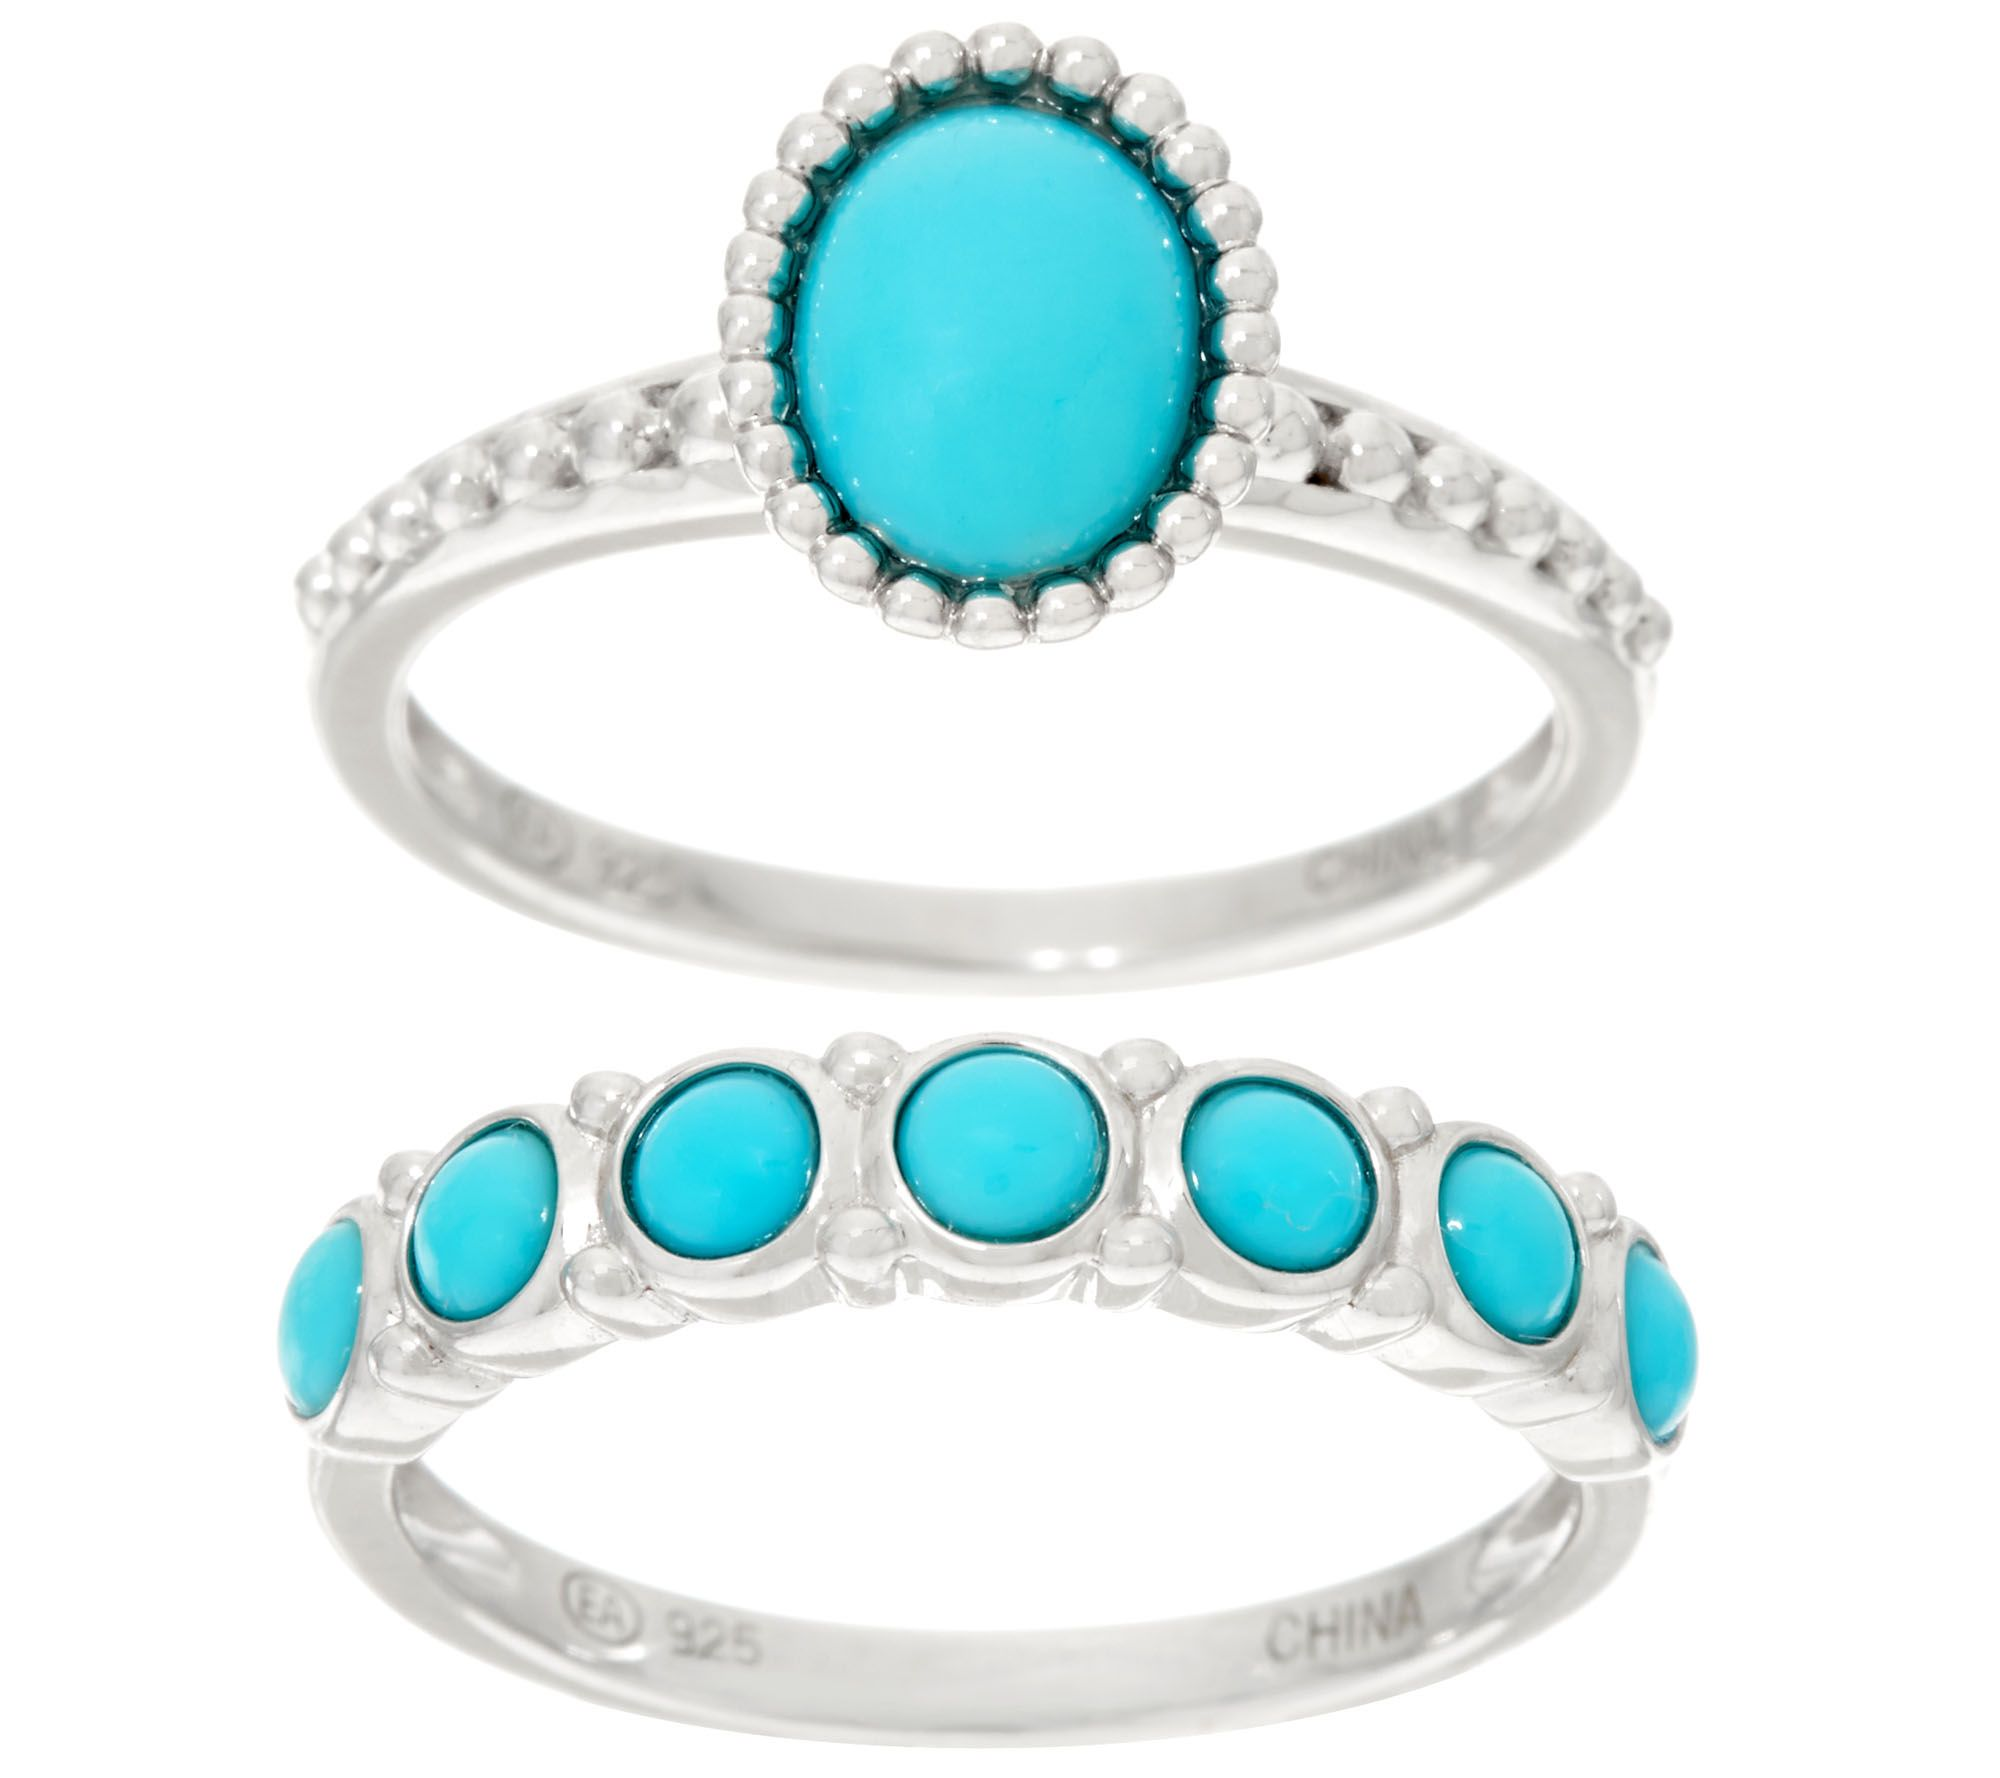 sterling oval com silver wide ring rings amazon dp jewelry turquoise stone inch diamond sleeping beauty sizes